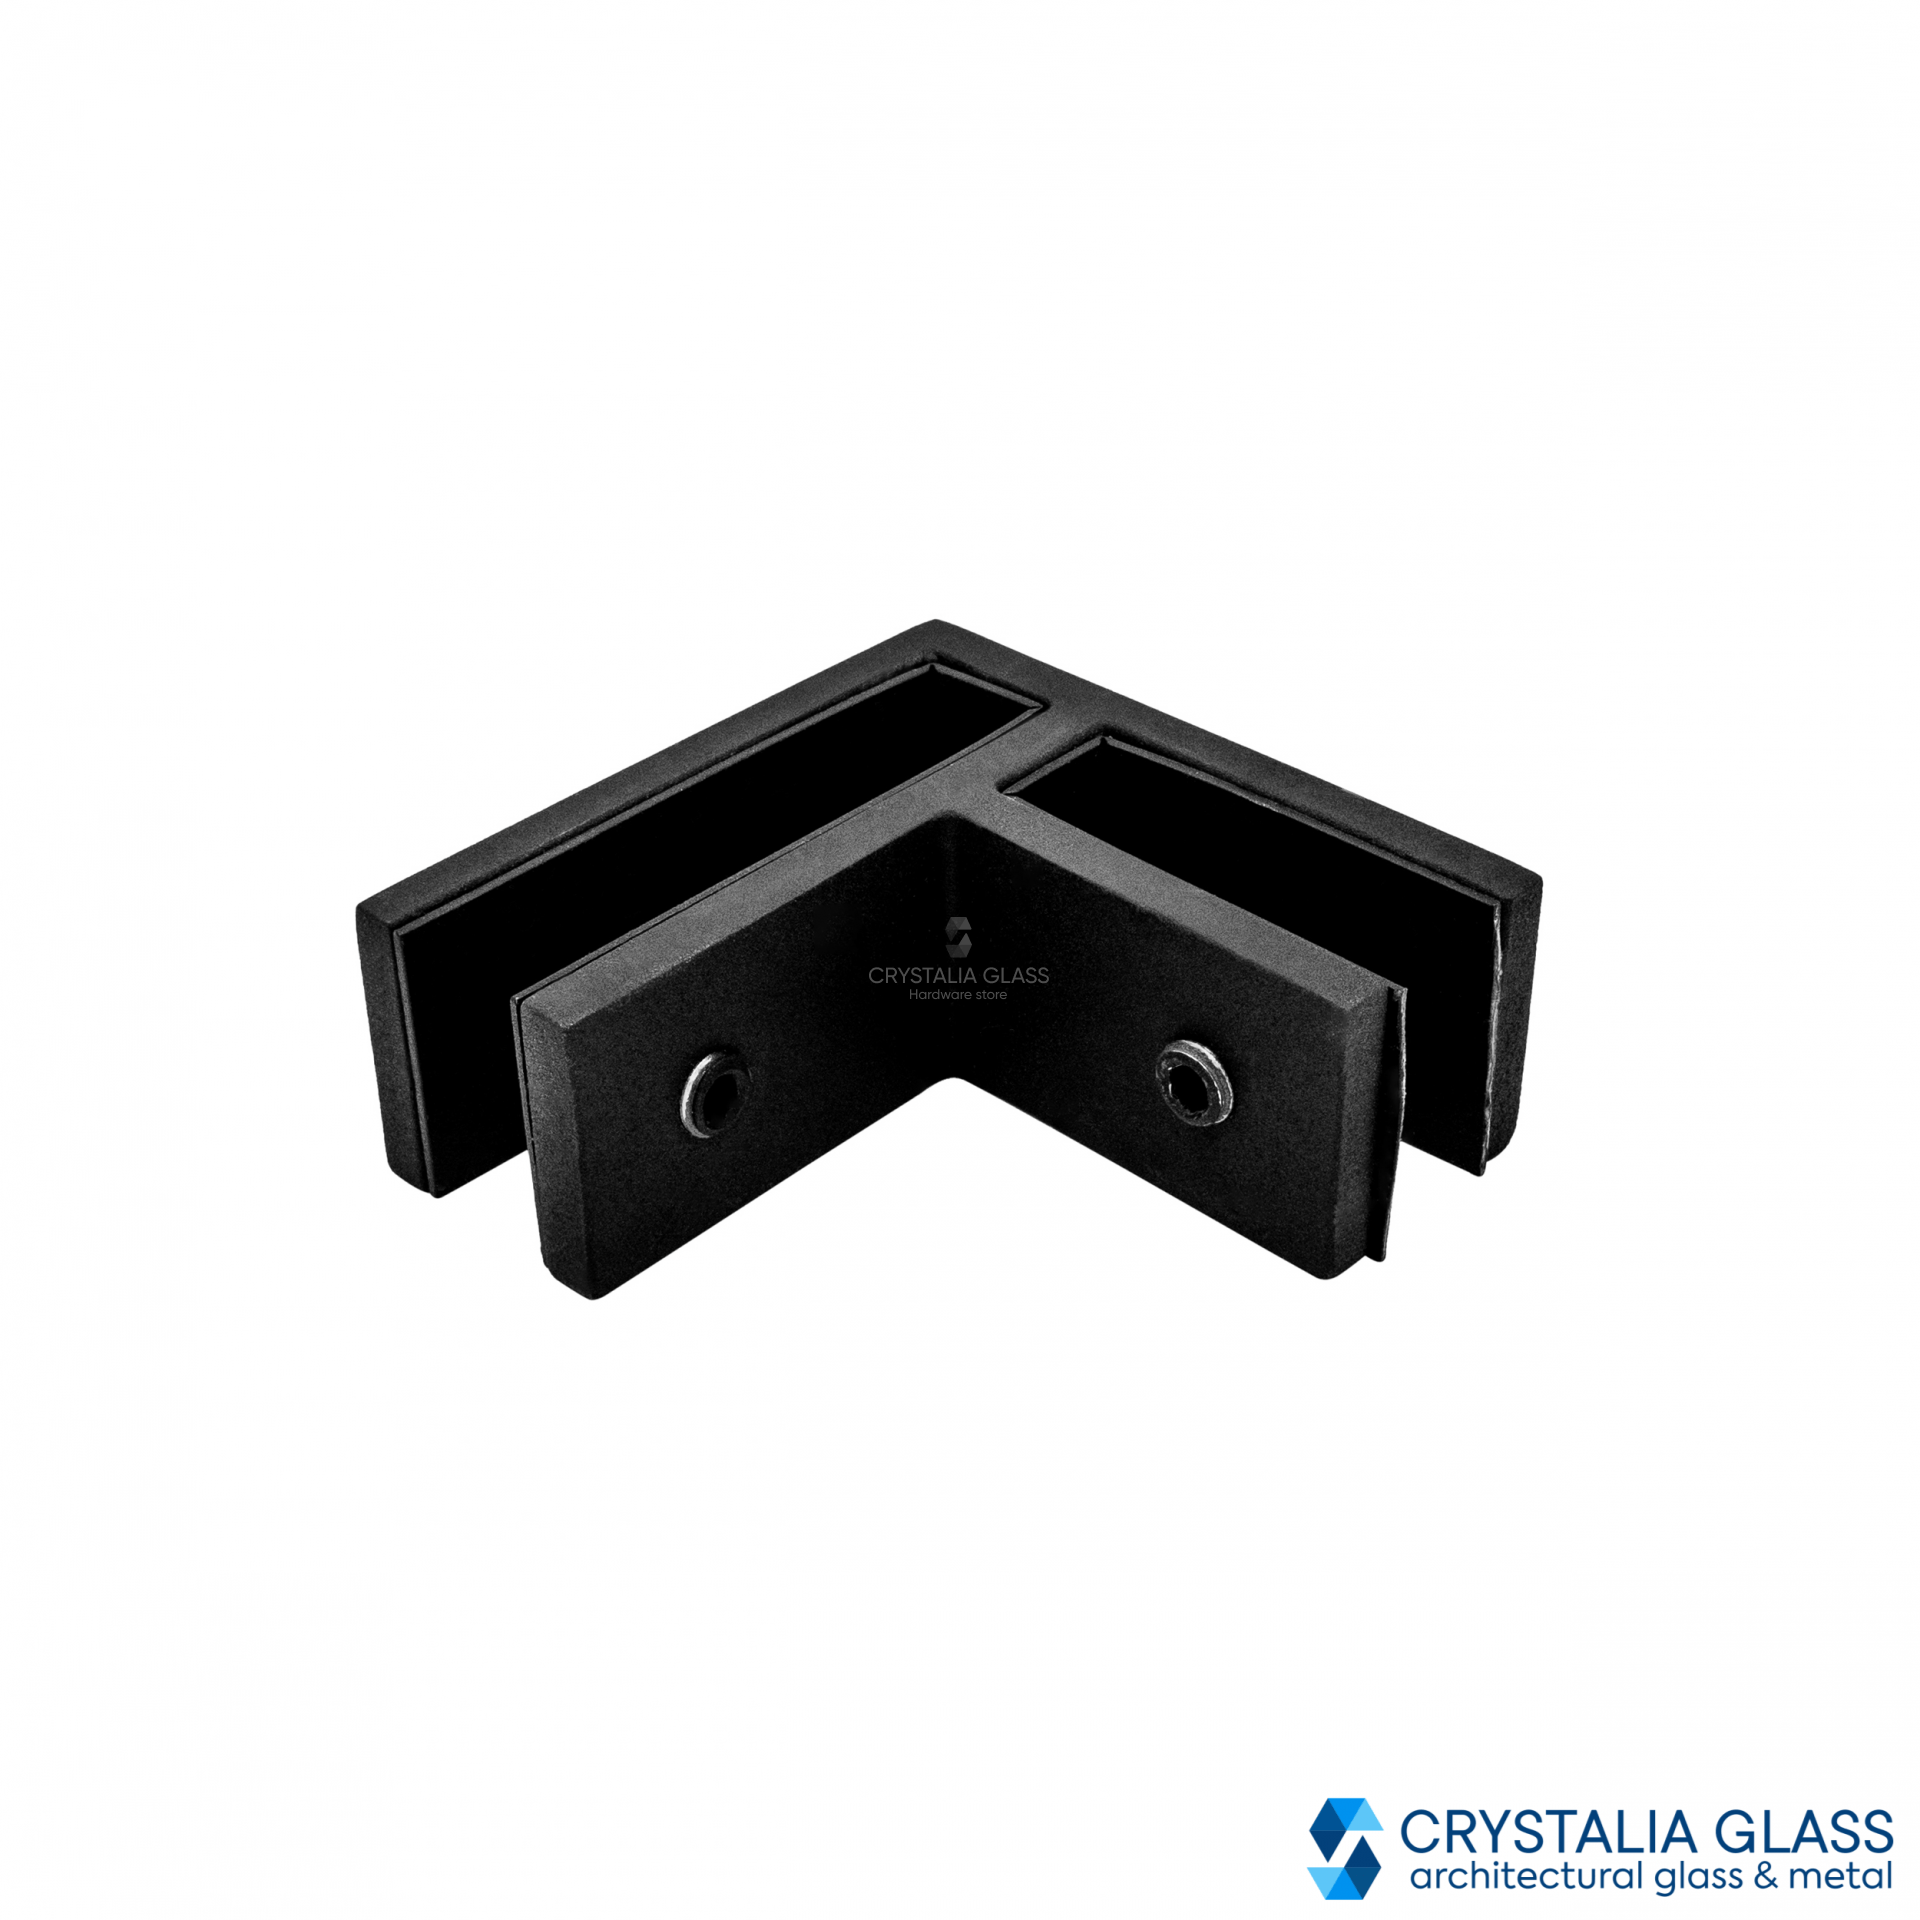 CG Black Matte 90 Degree Glass Clamp